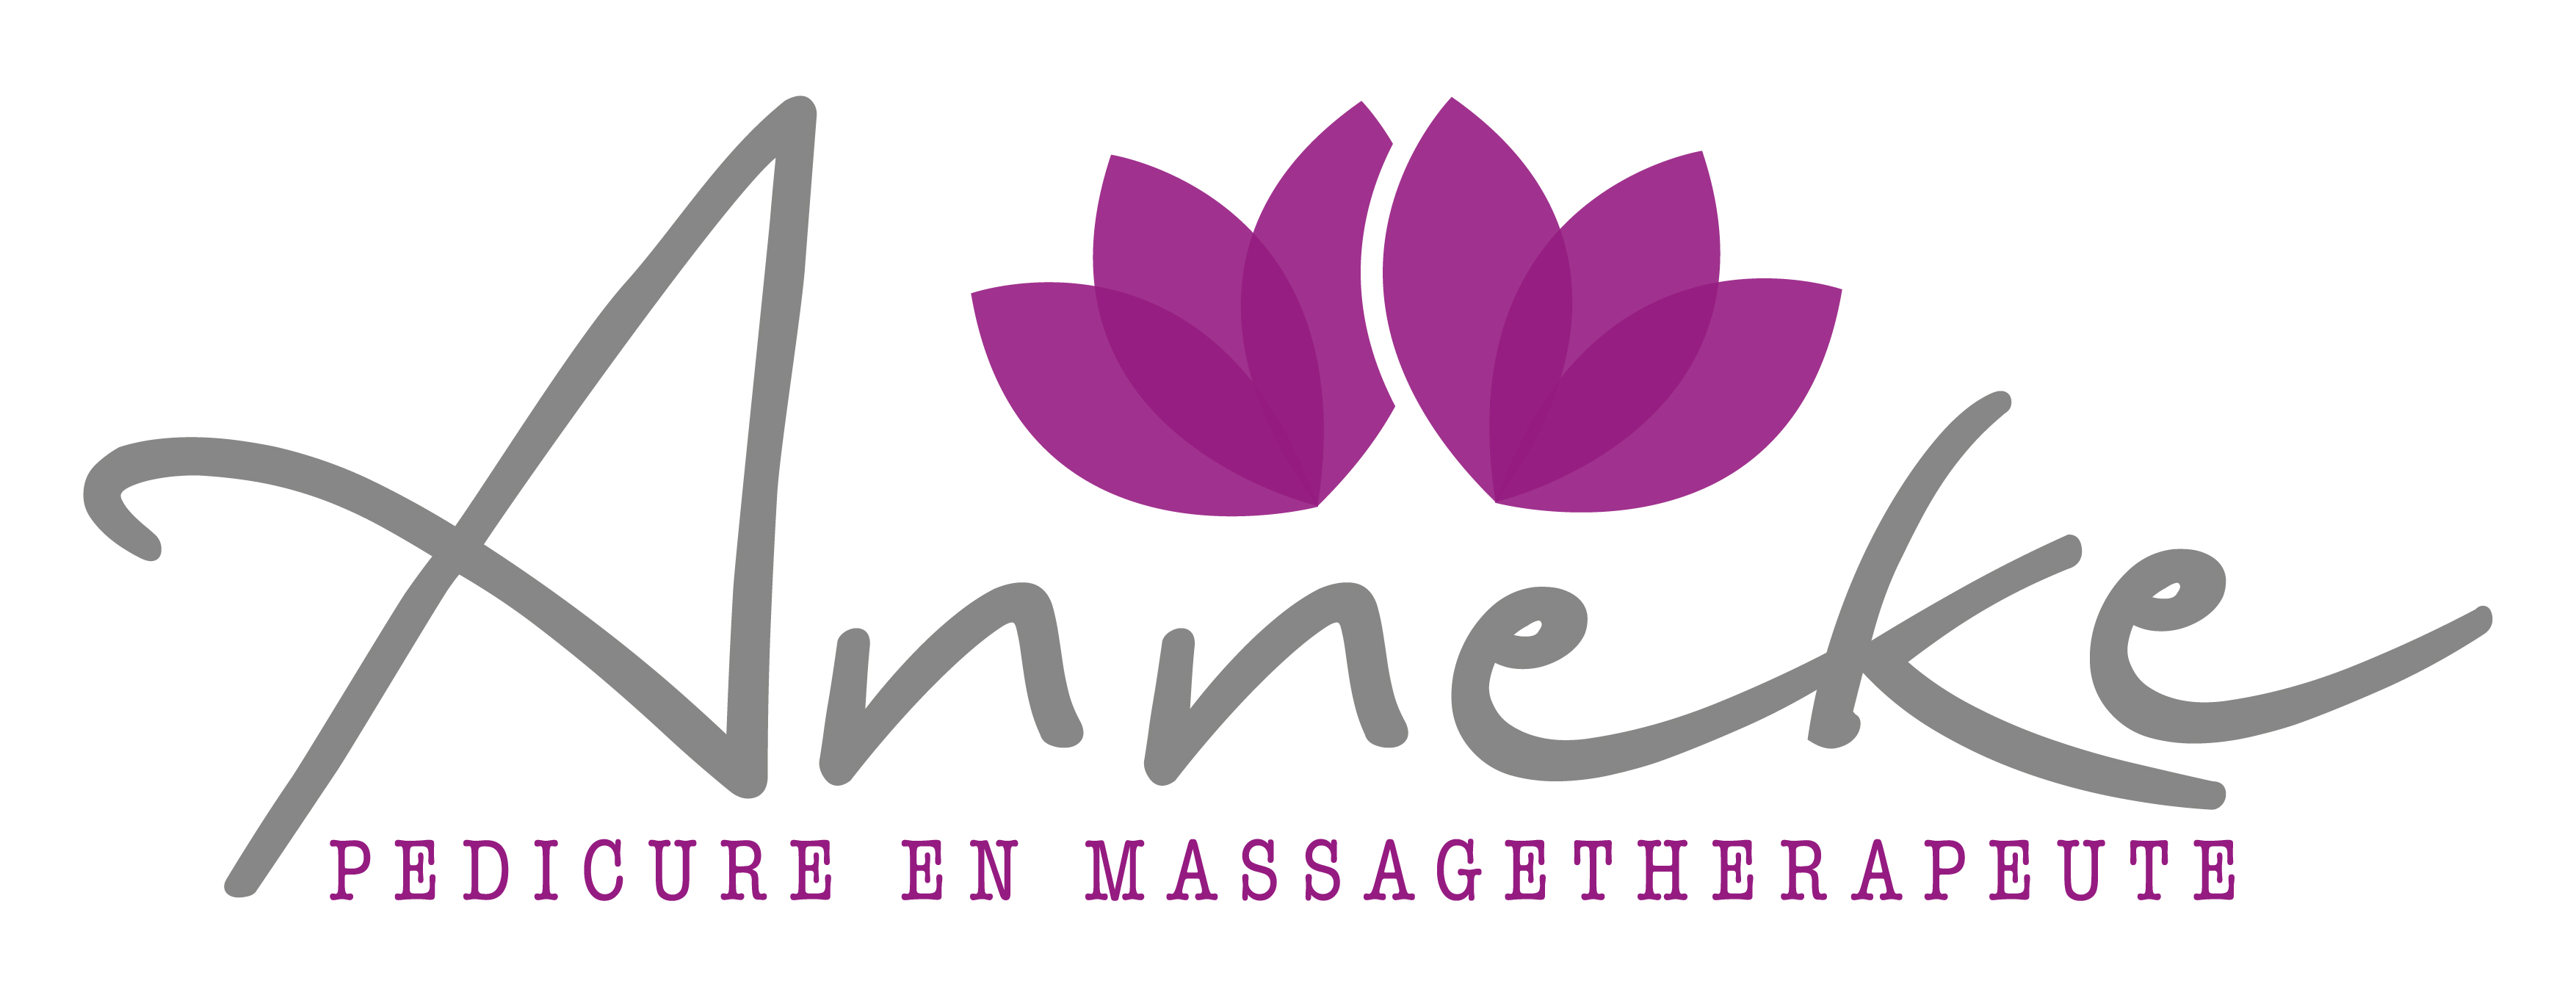 Logo Anneke medische pedicure & massage therapie